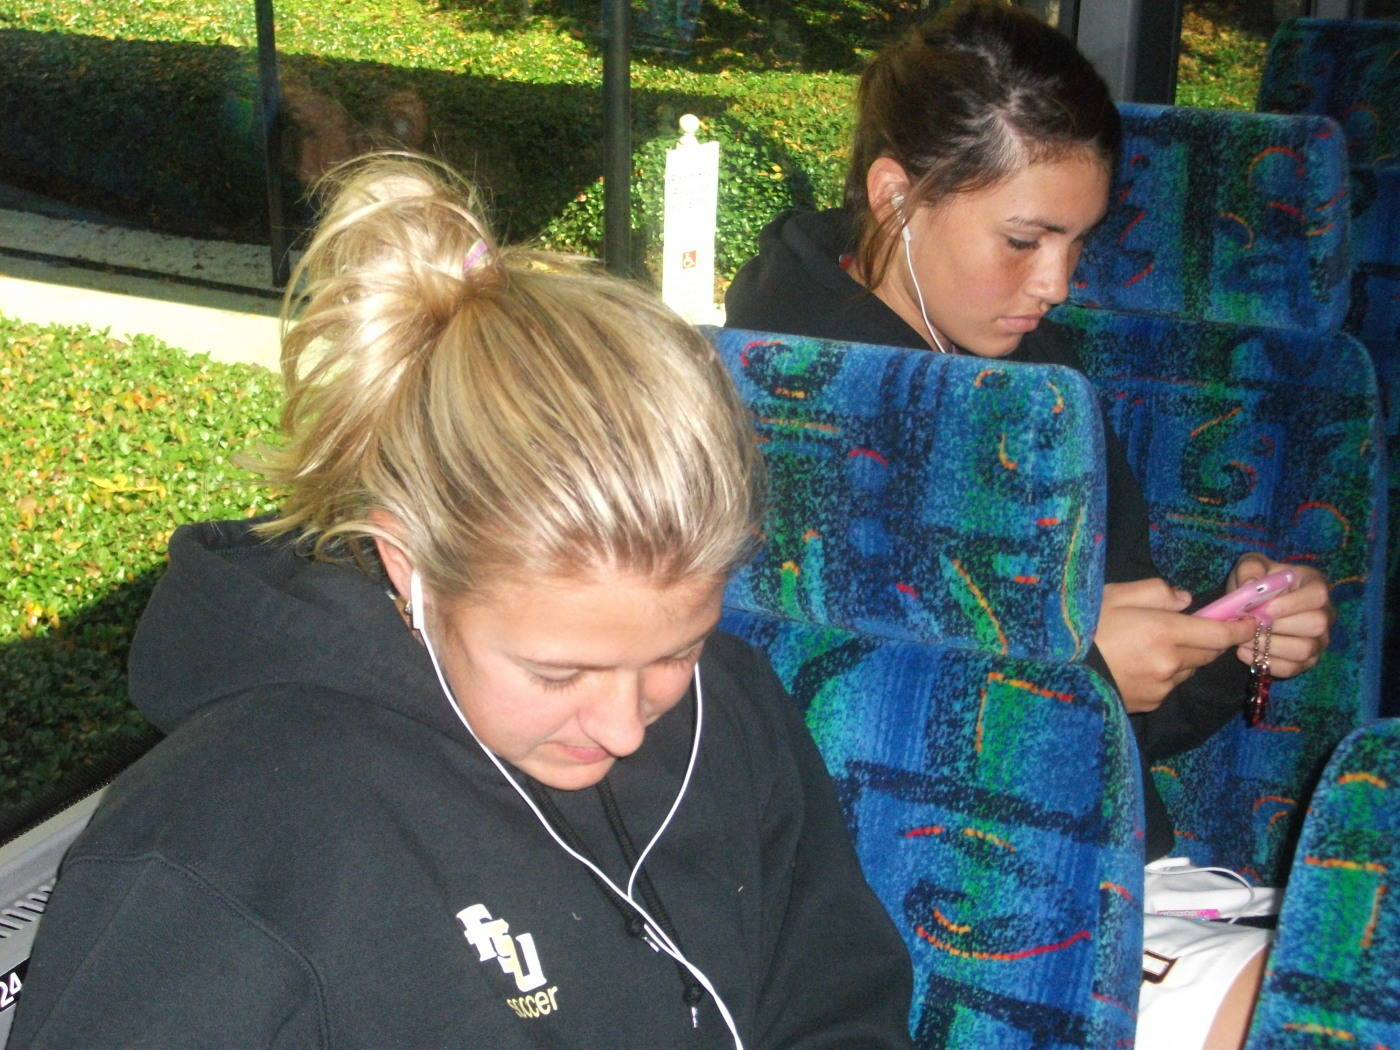 Breezy Hupp and Tiana Brockway listen to some music on the bus ride over to WakeMed Park.